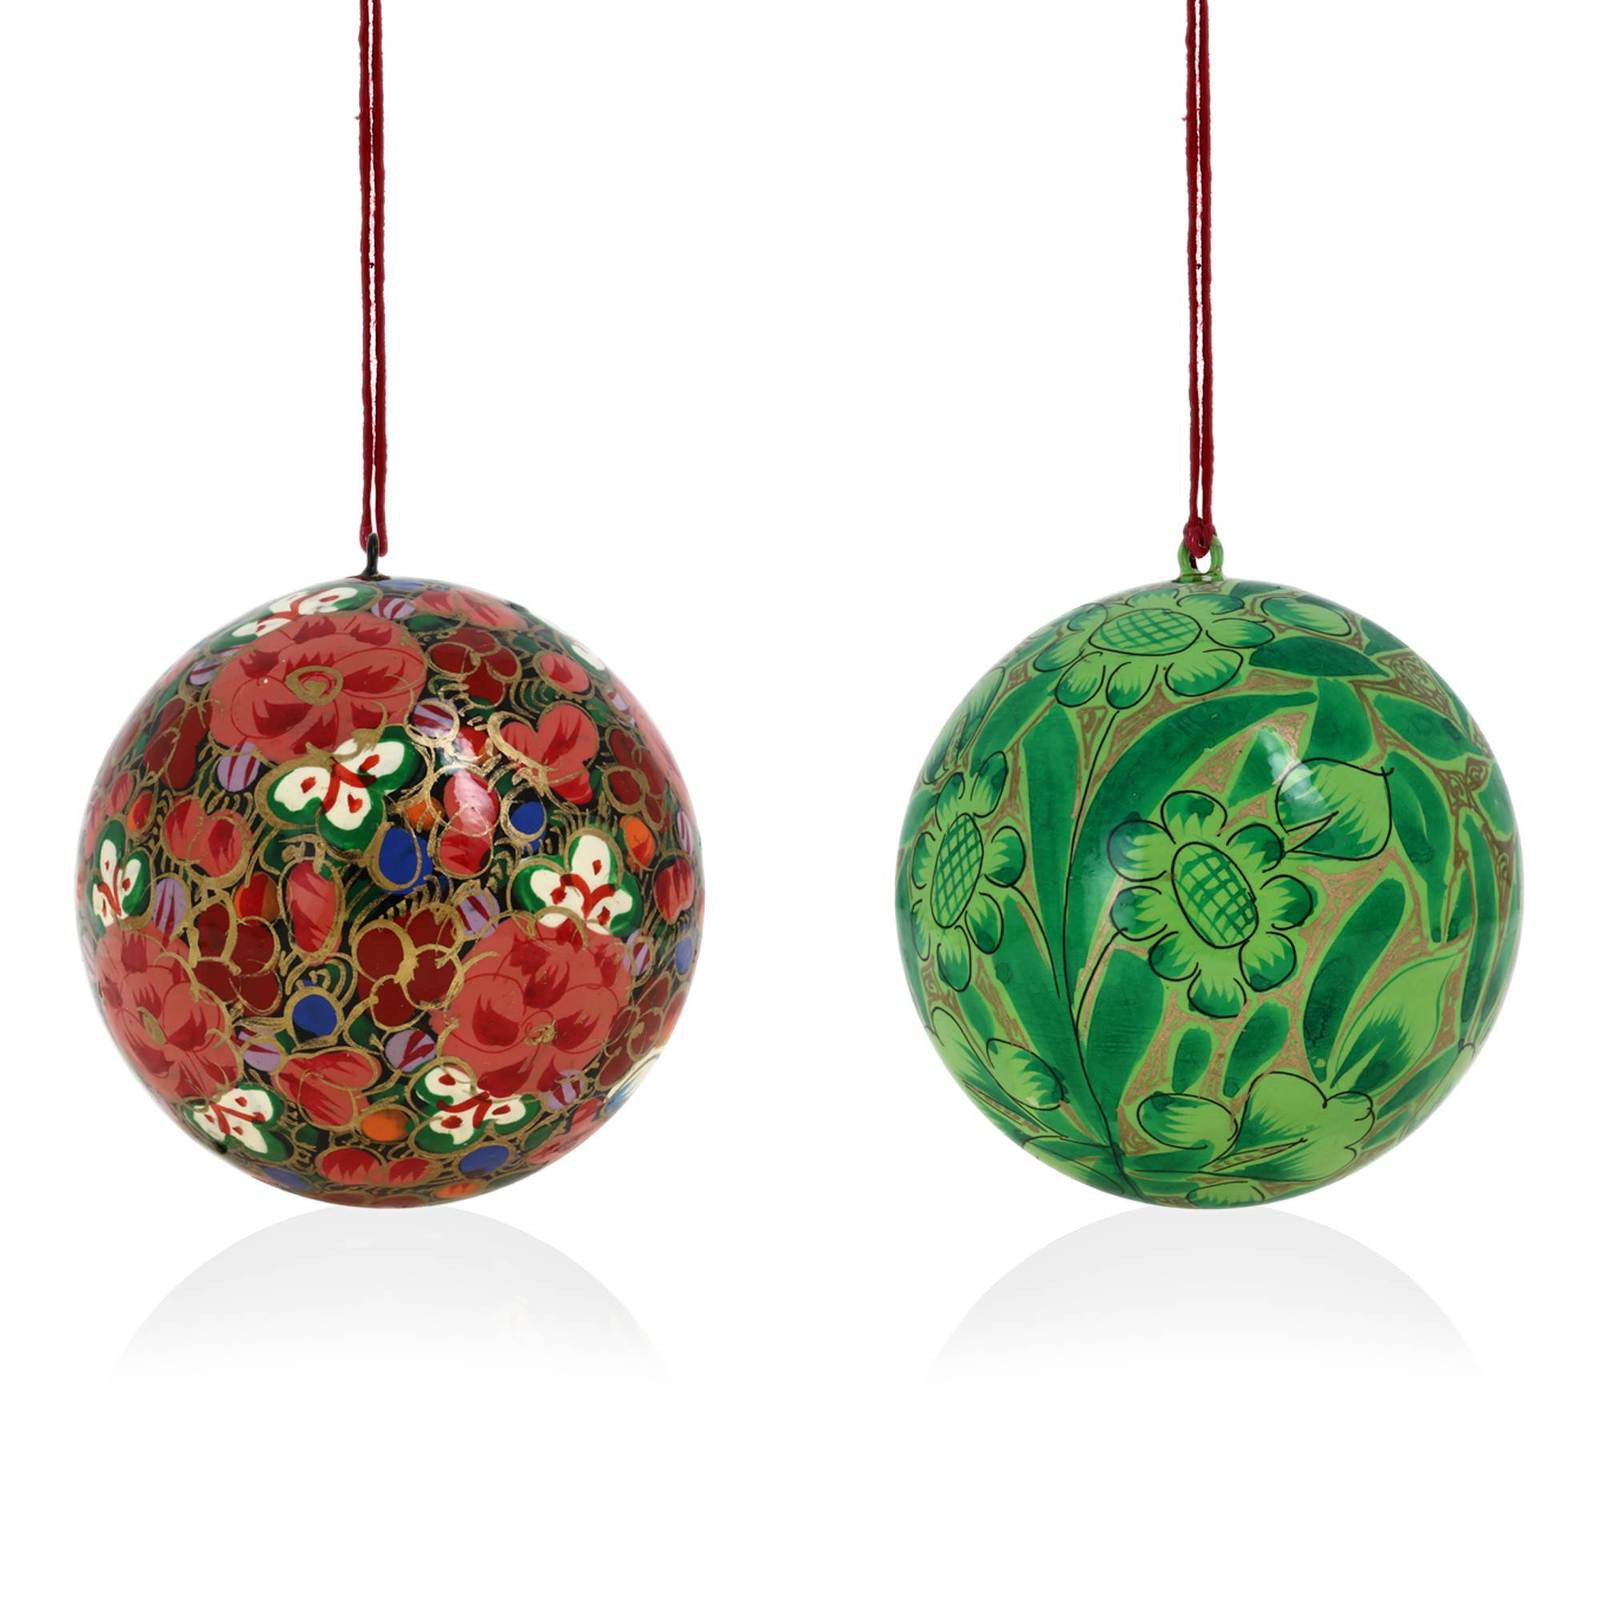 Hanging Christmas ornaments Awesome Decoration Christmas ornaments Handmade Paper Mache Of Luxury 45 Pictures Hanging Christmas ornaments